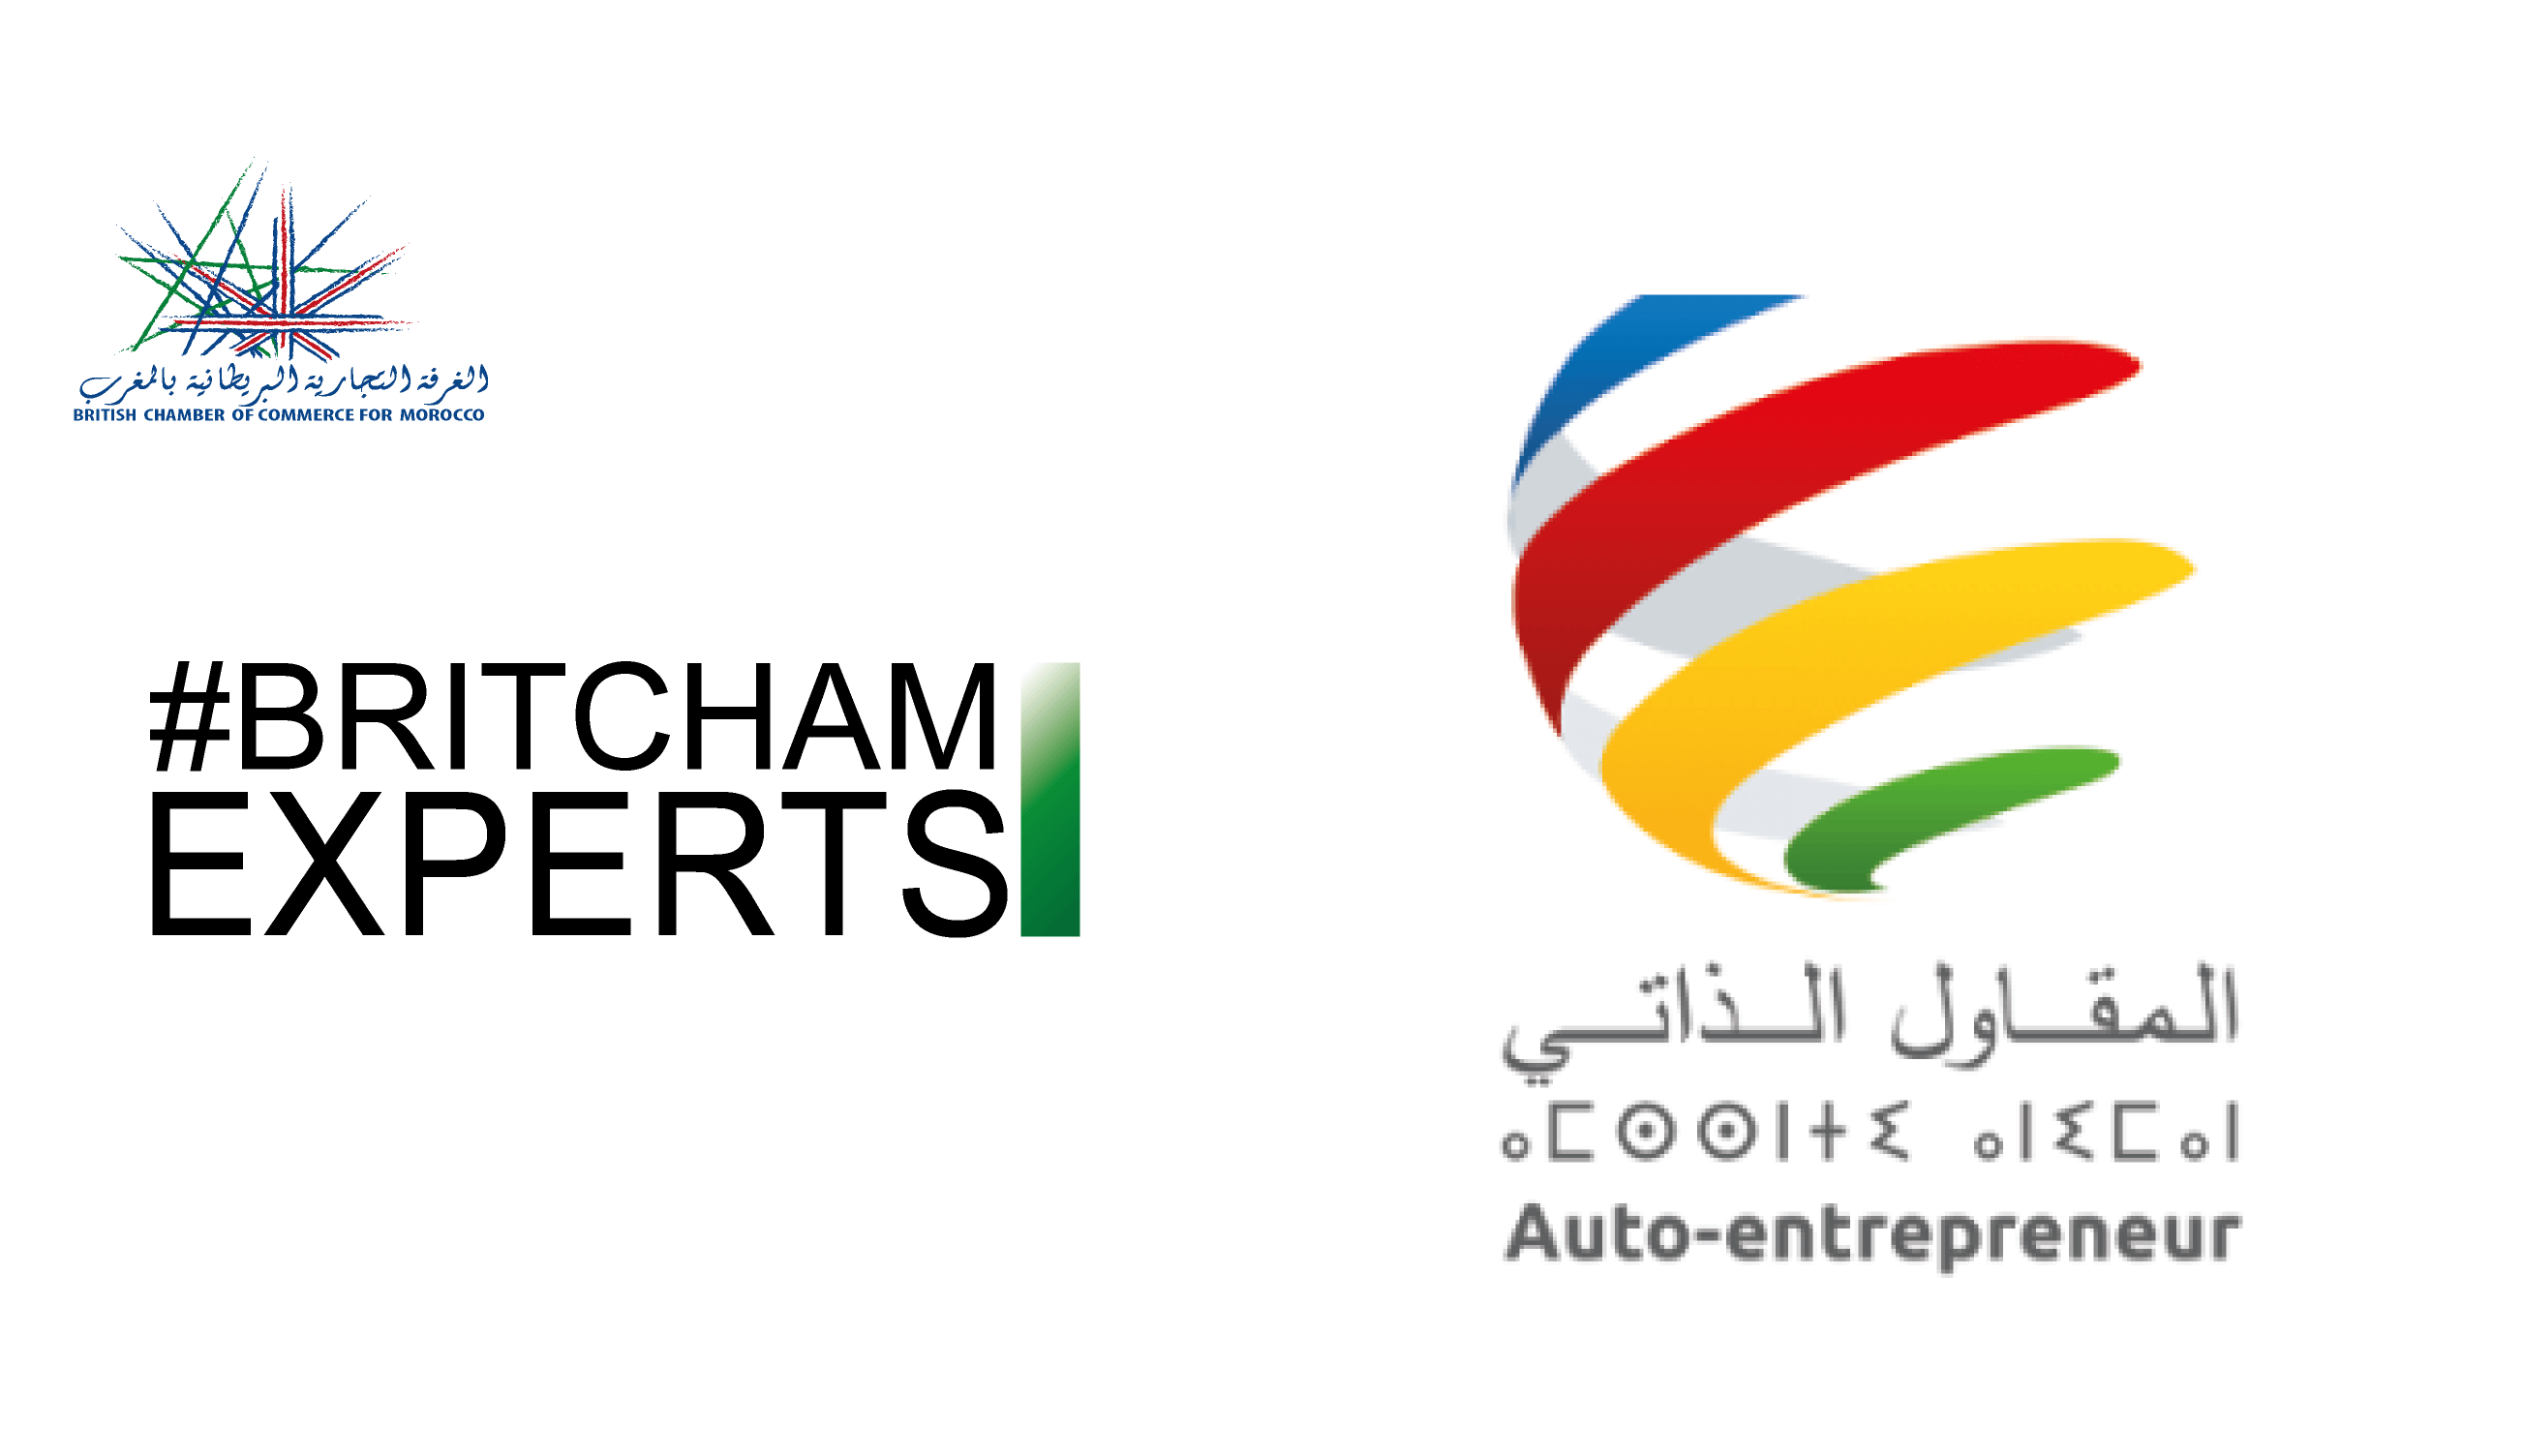 Meet The Experts : Le statut d'auto-entrepreneur au Maroc